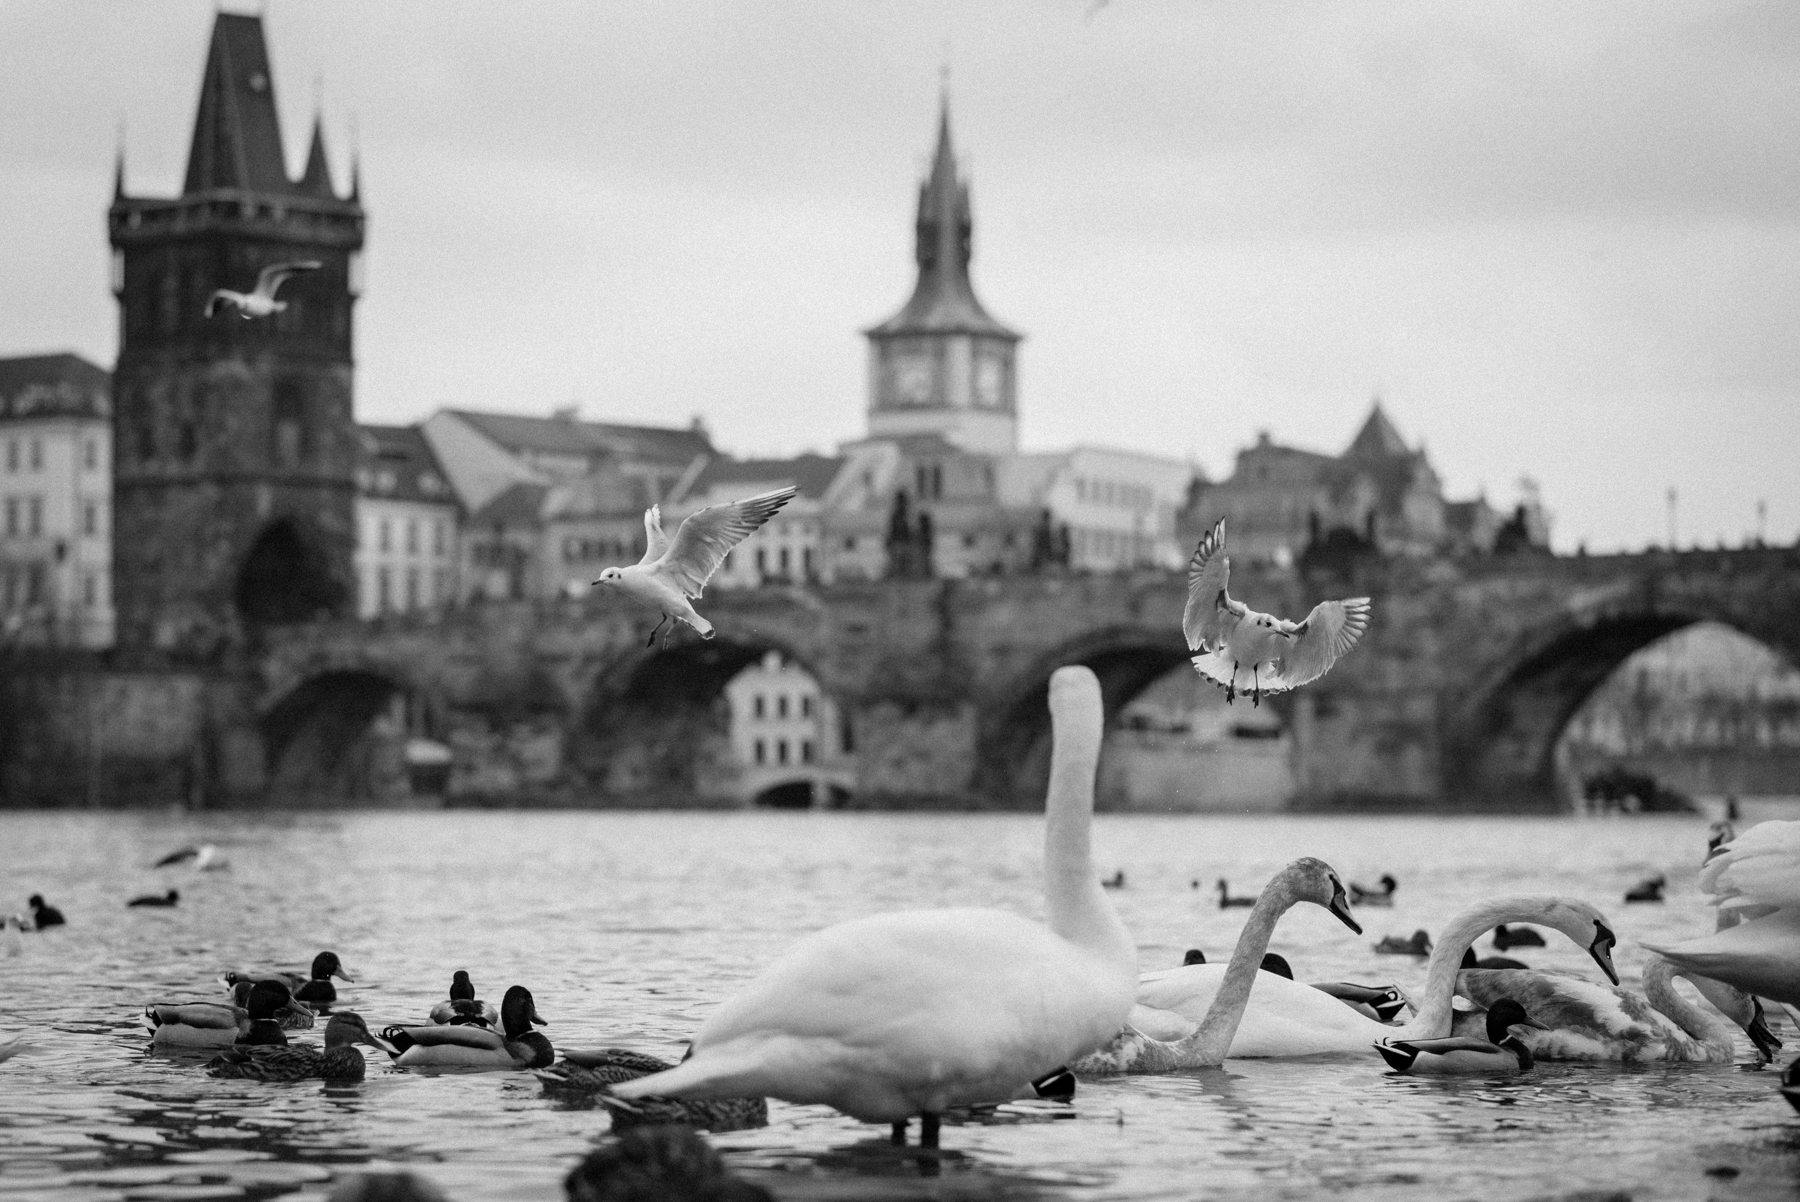 Charles Bridge: The other side, Czech Republic